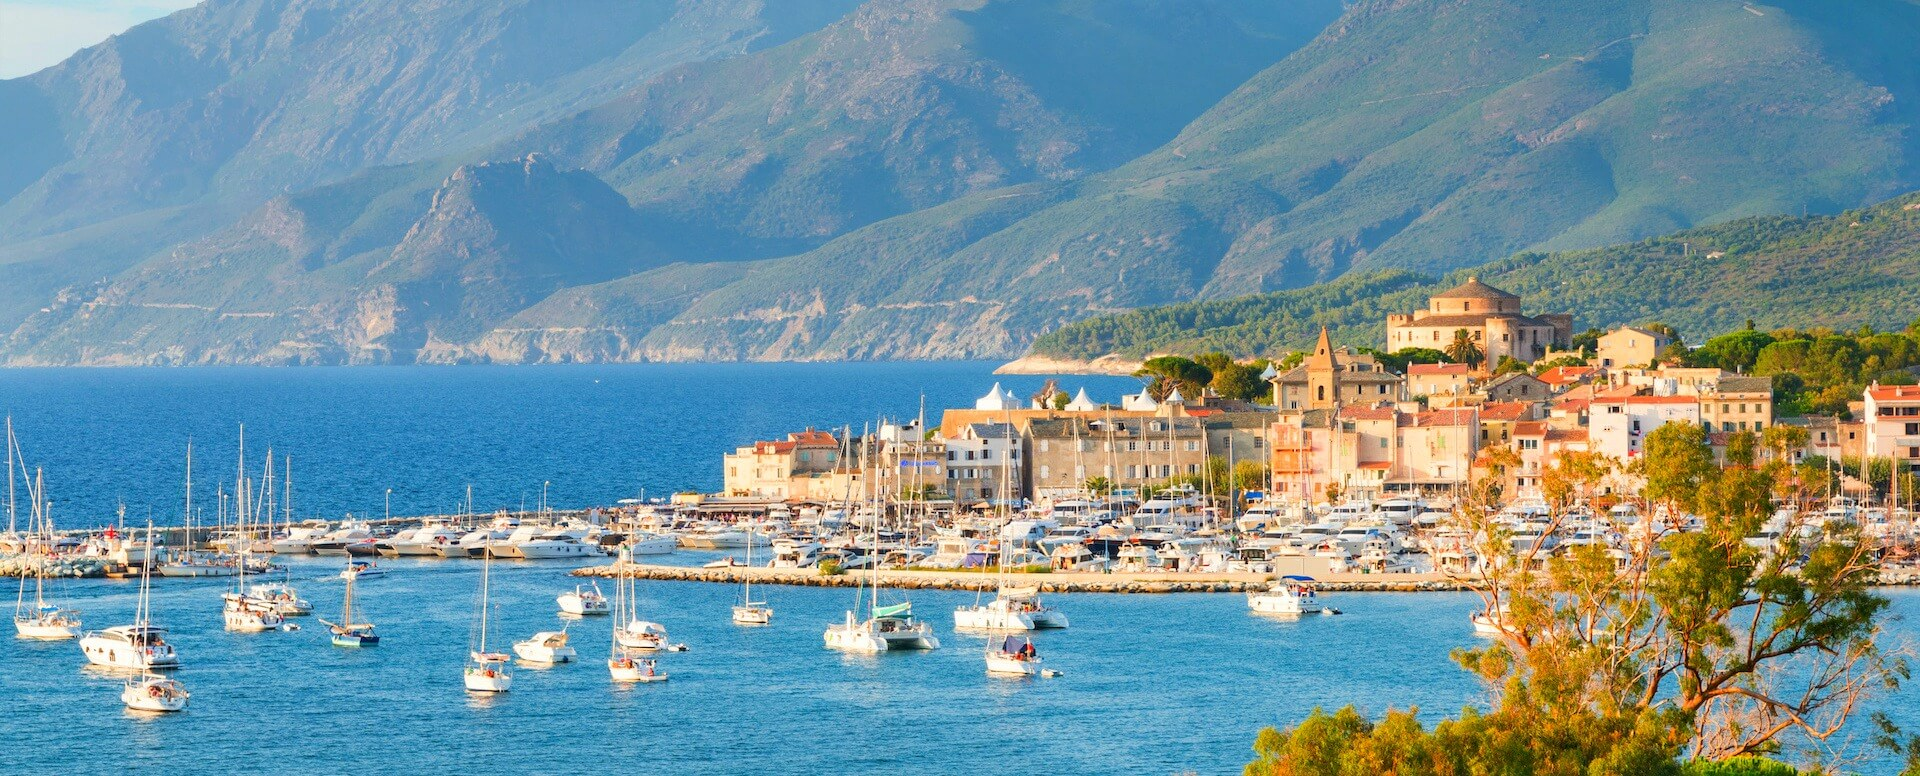 What to do in Corsica? Activity Guide - Corsica